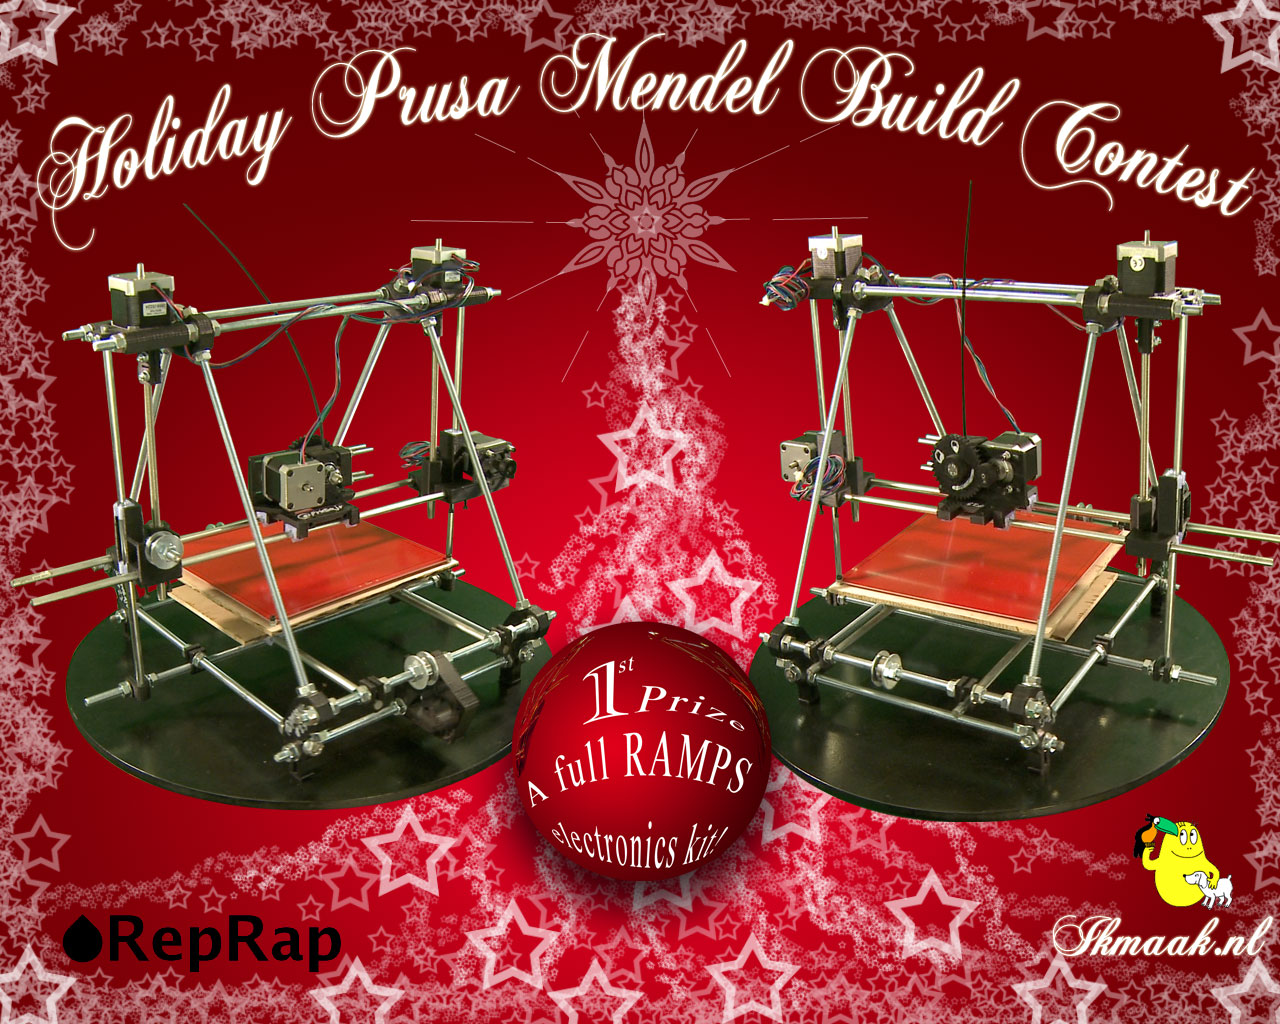 The Holiday Mendel Build Contest